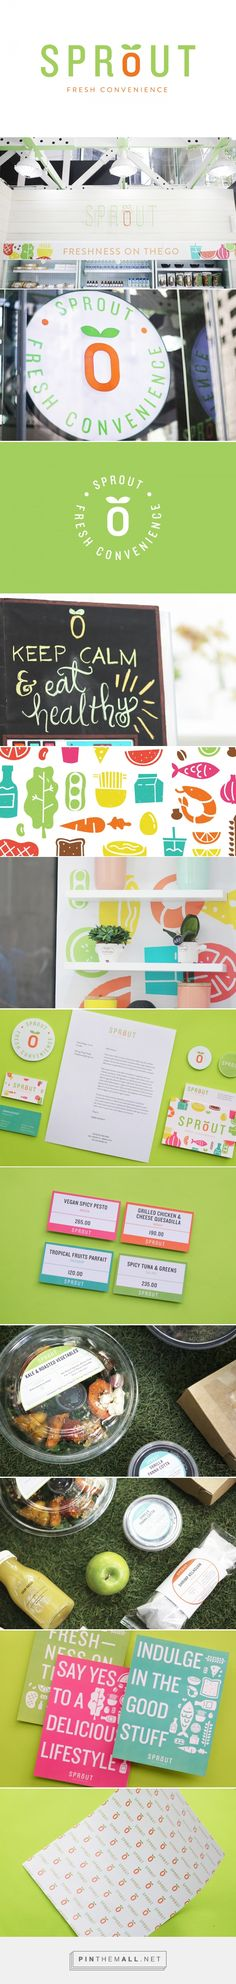 Sprout on Behance | Fivestar Branding – Design and Branding Agency & Inspiration Gallery